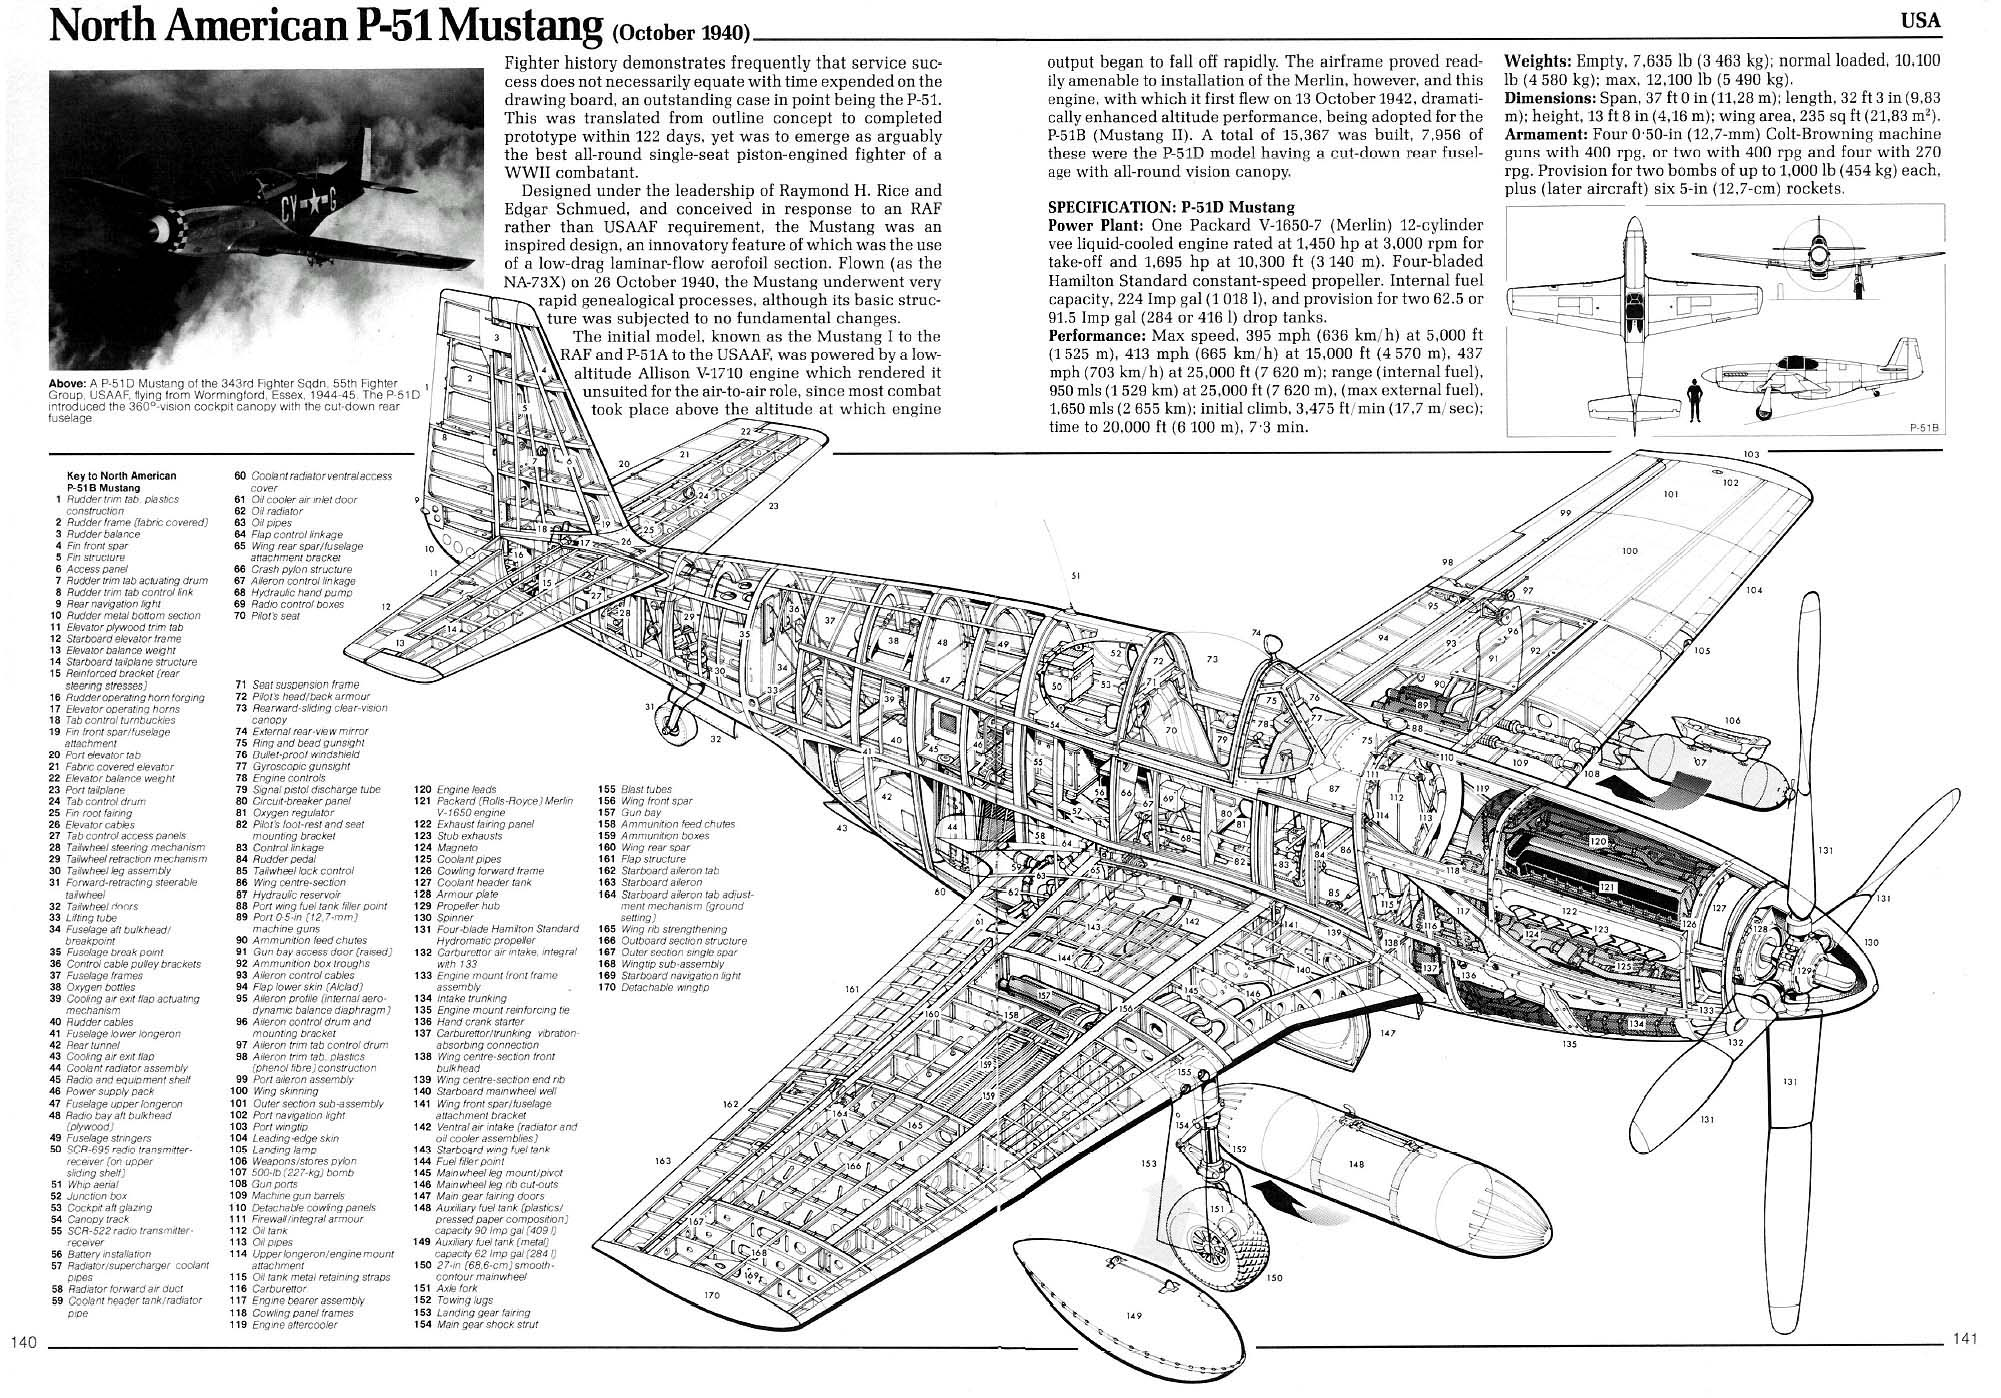 P-51 Mustang HD Wallpaper   Background Image   2001x1398   ID:373310